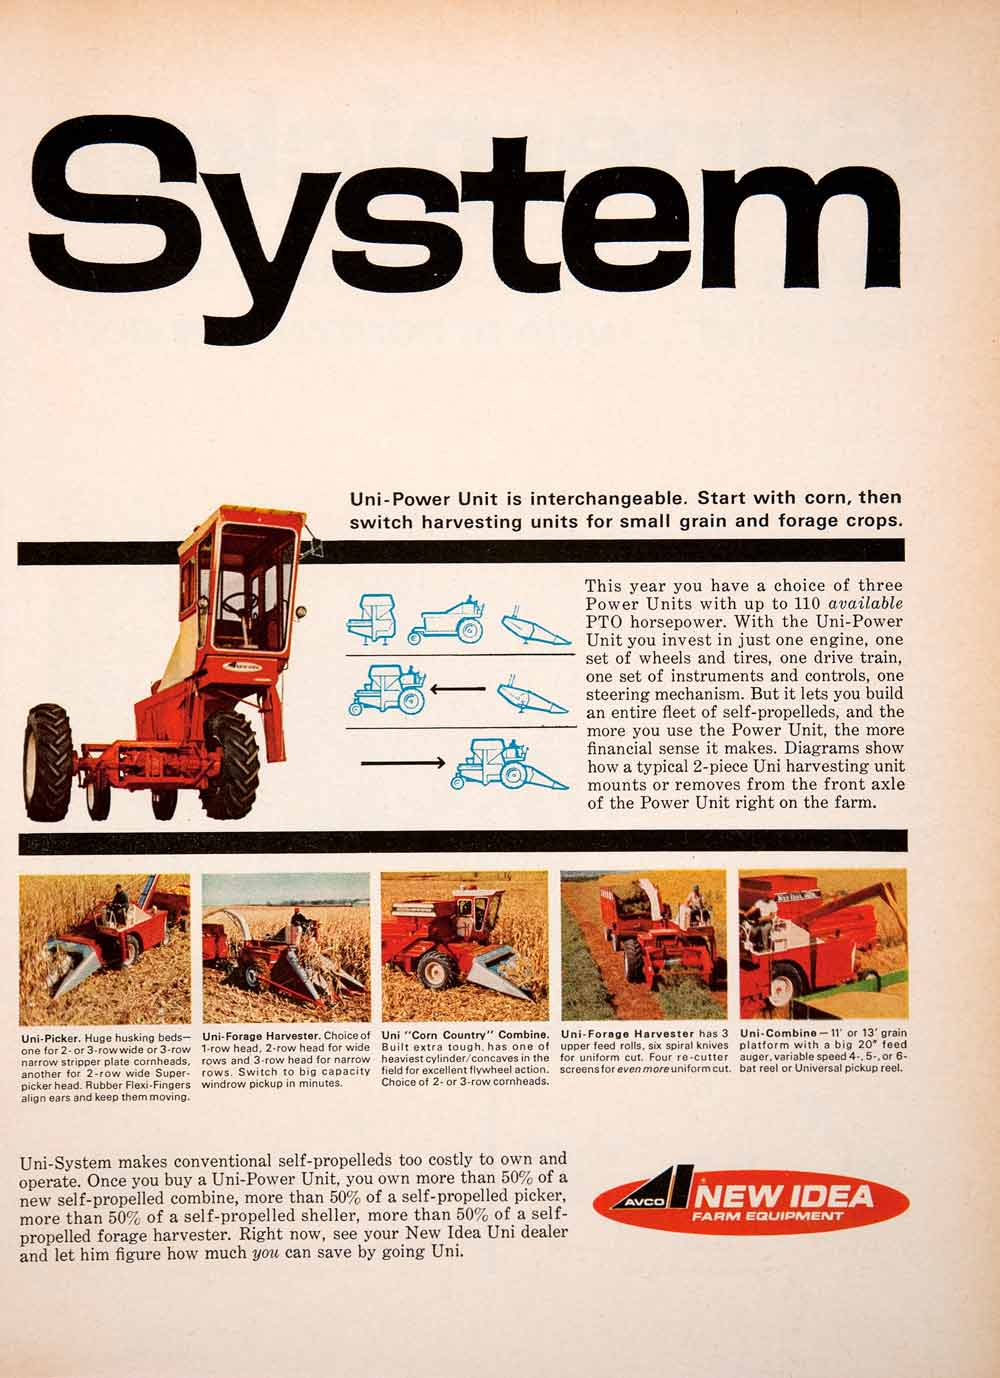 1967 Ad Uni-System New Idea Combine Harvester Agriculture Farm Machinery SF4